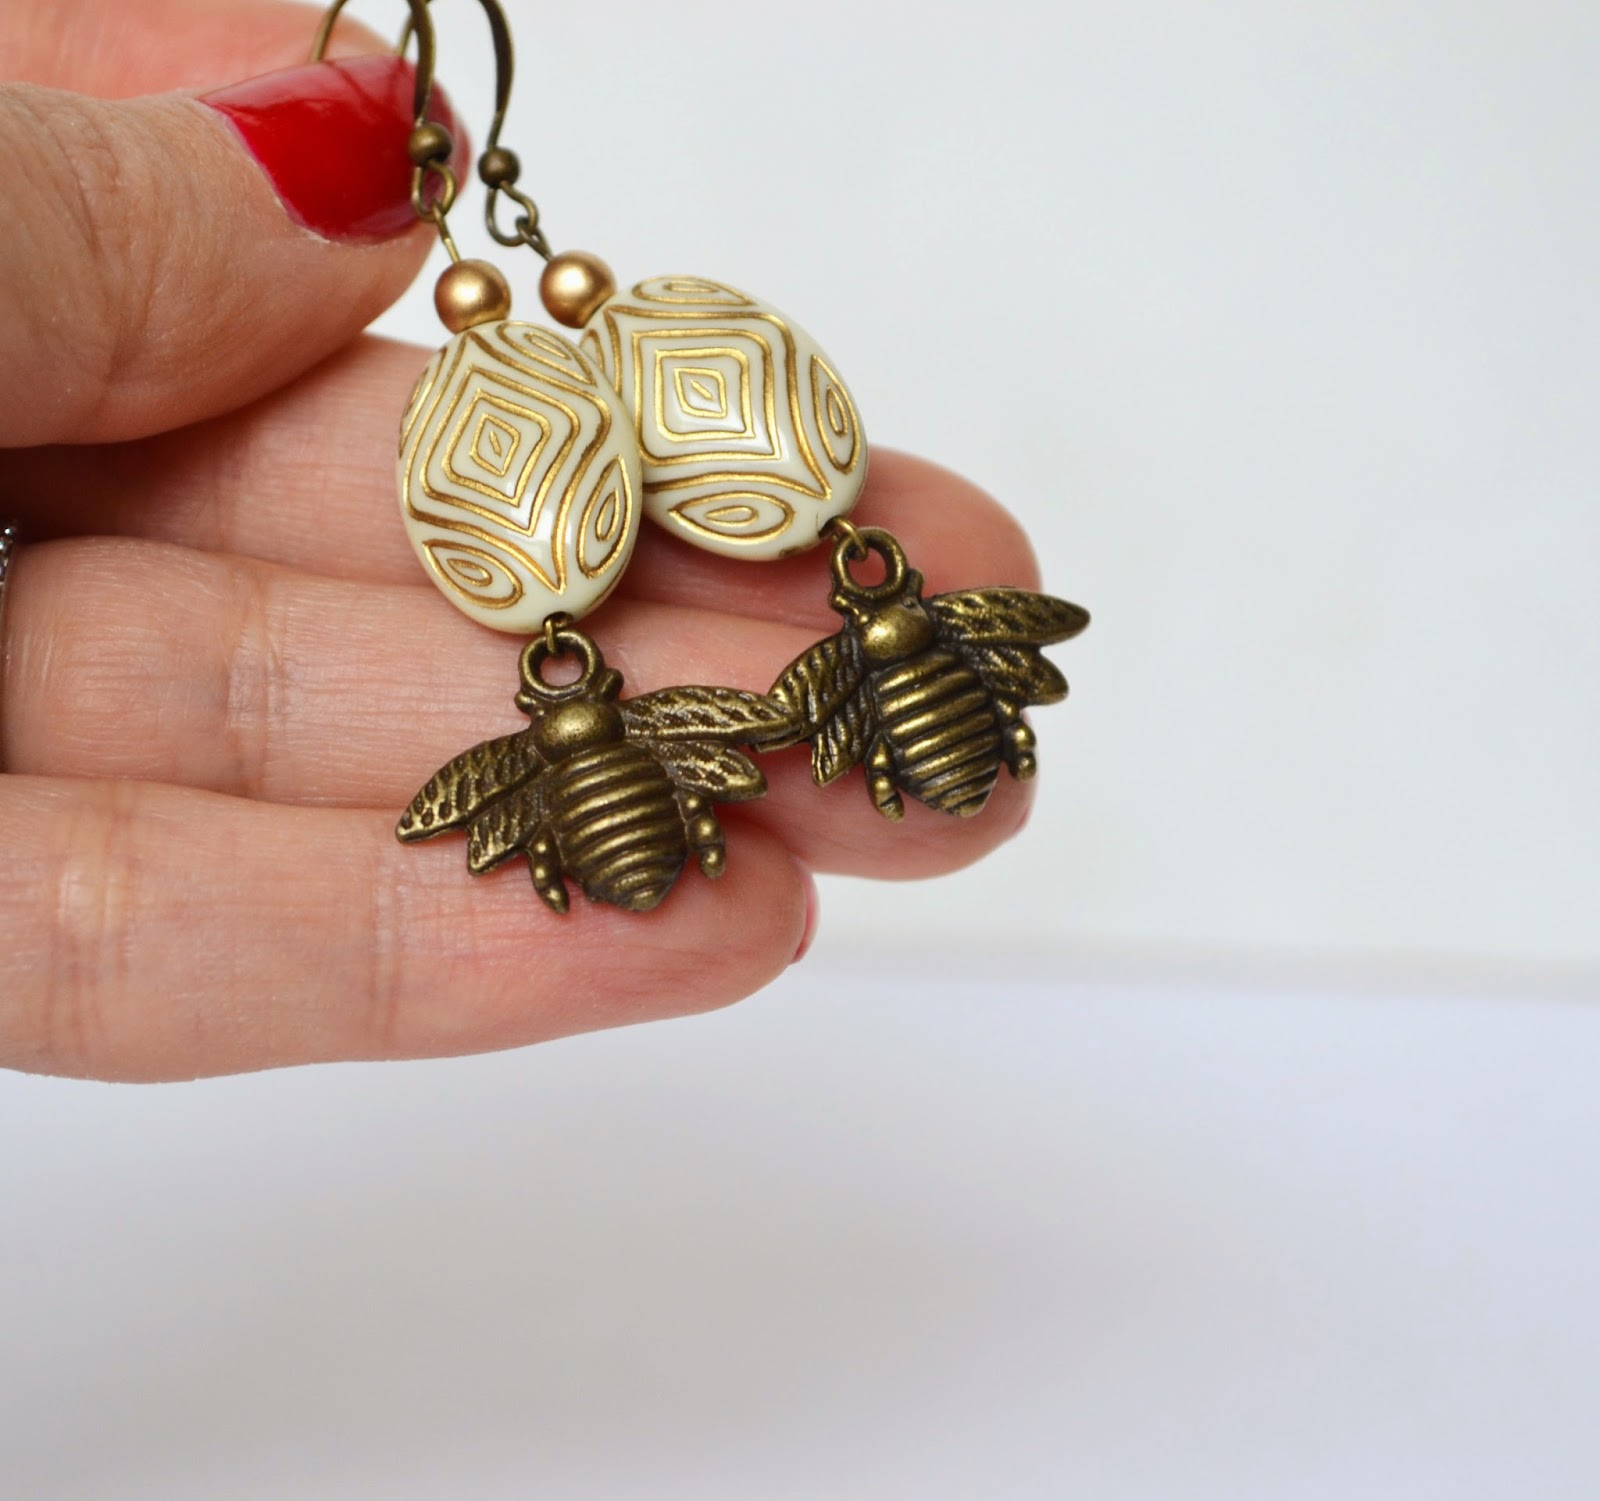 https://www.etsy.com/listing/75885541/bee-earrings-honey-bee-jewelry-bees?ref=shop_home_active_22